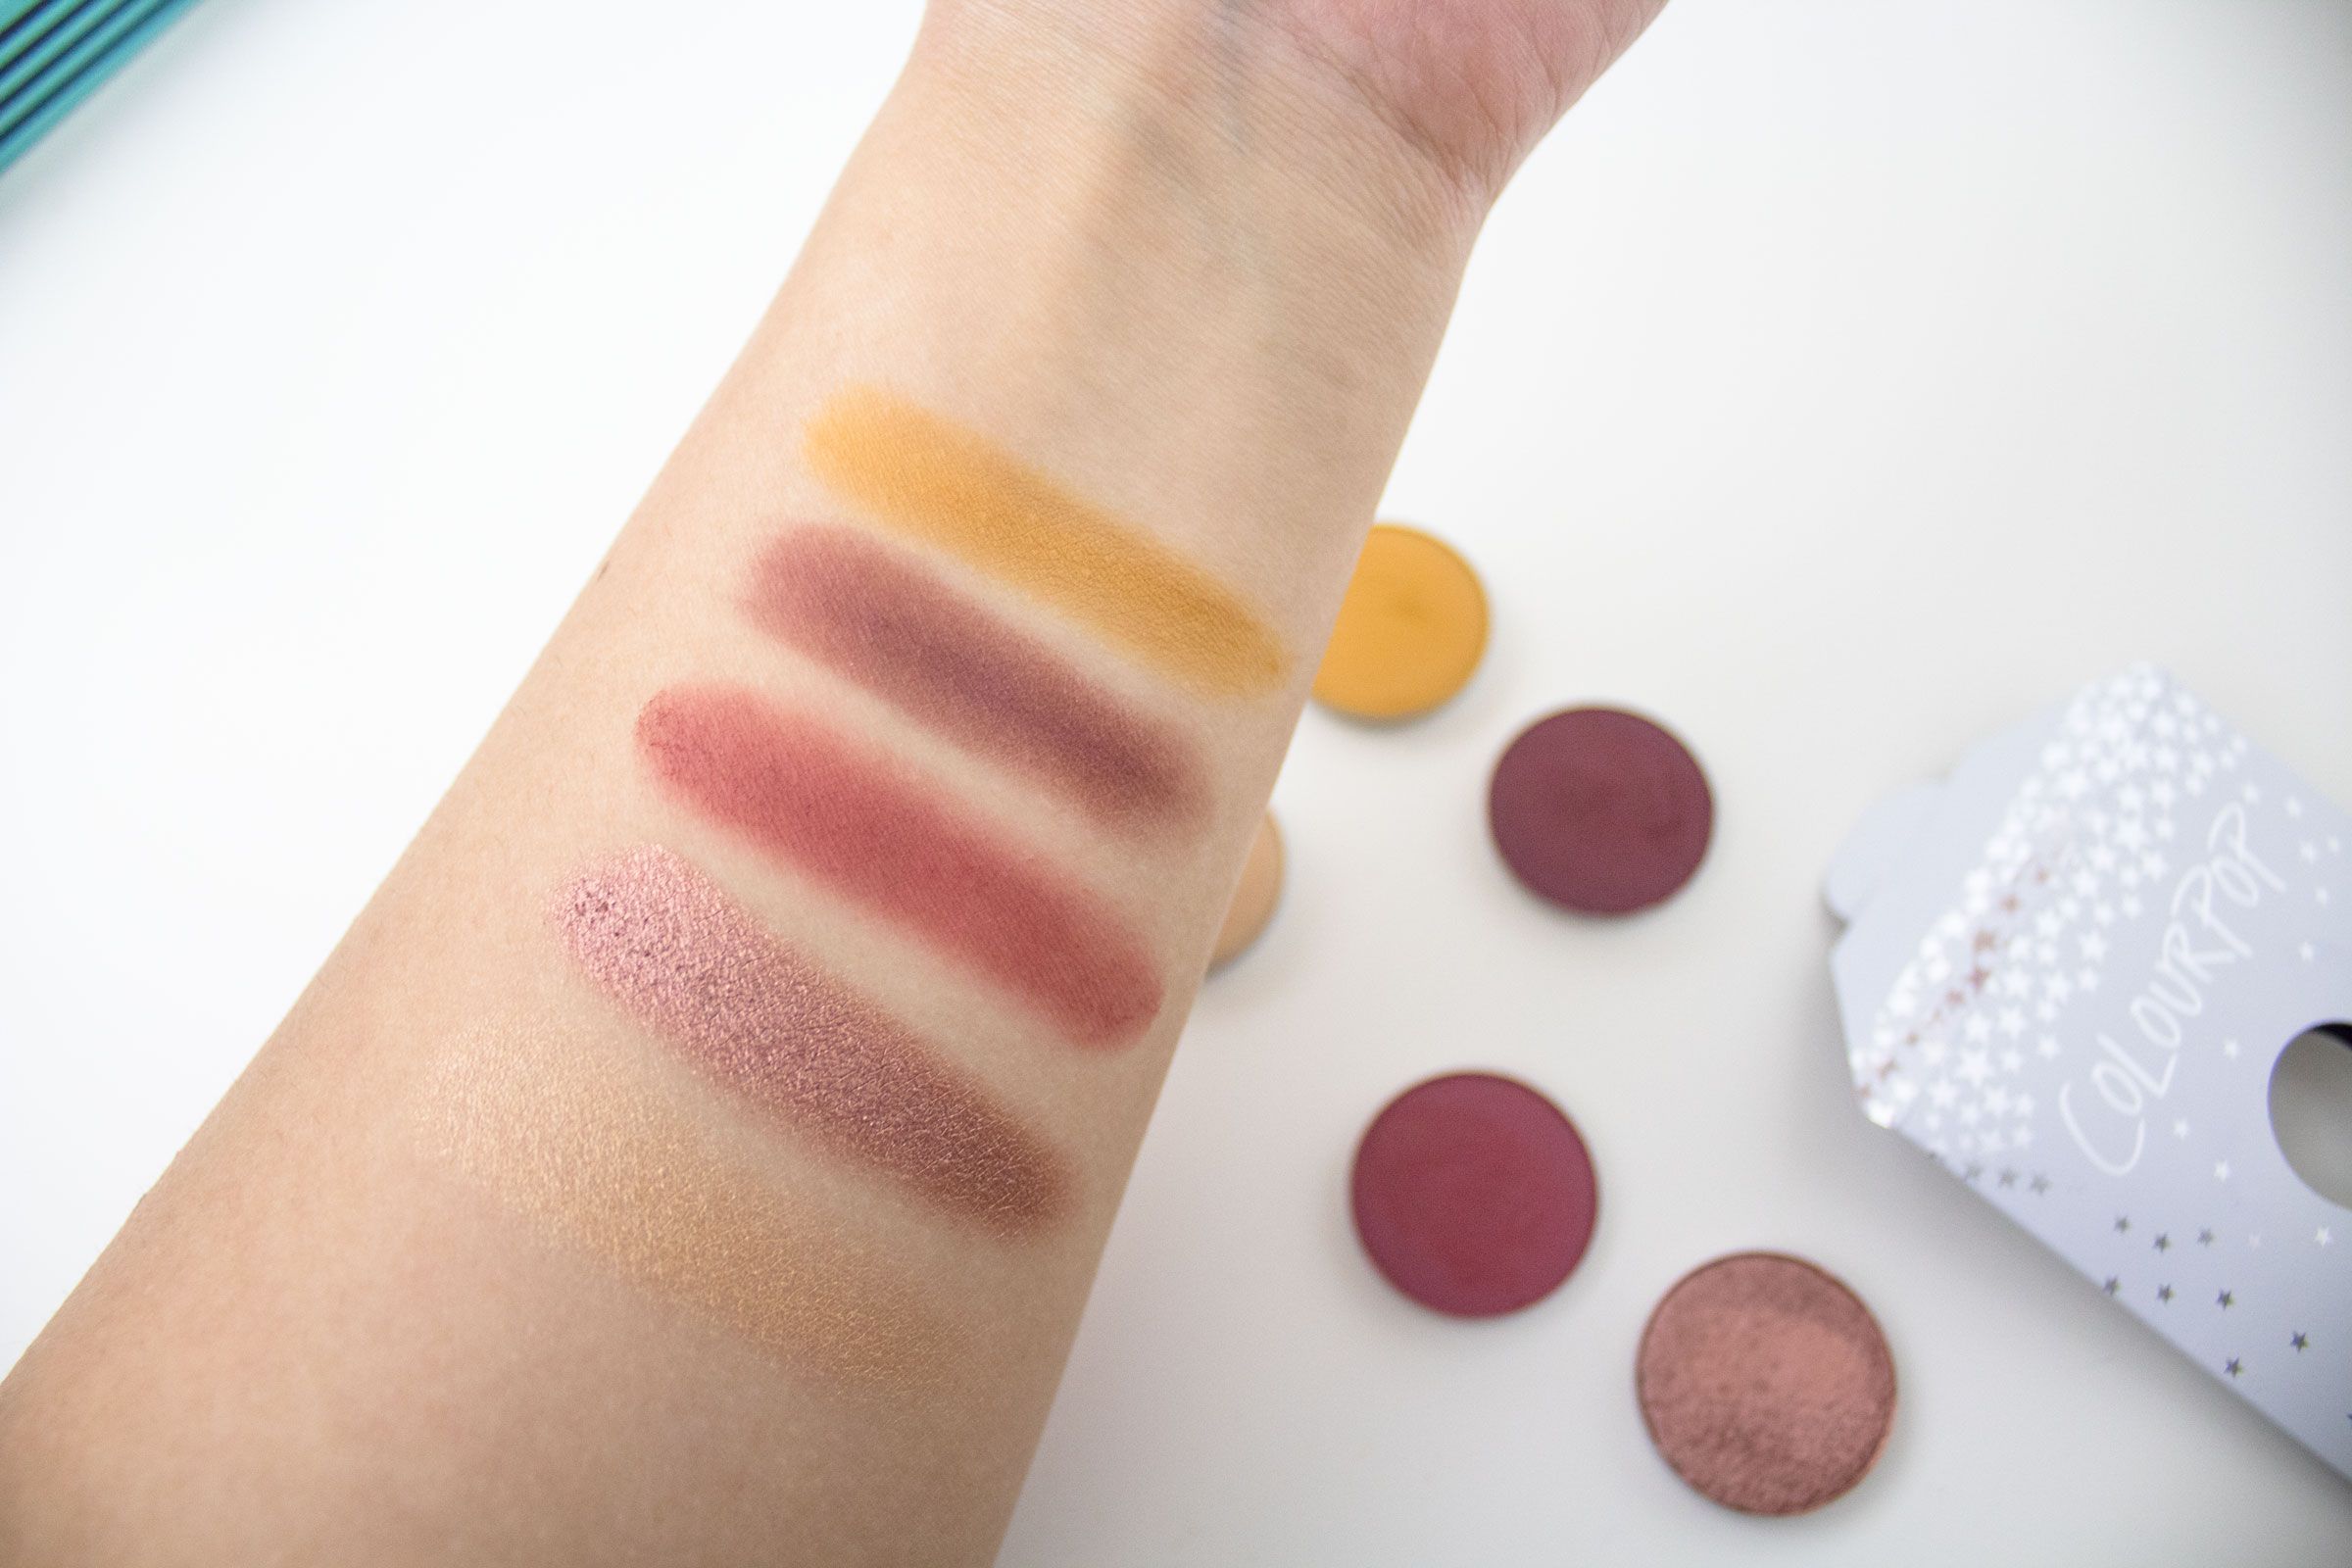 colourpop pressed shadows paper tiger, hi maintenance palette swatches